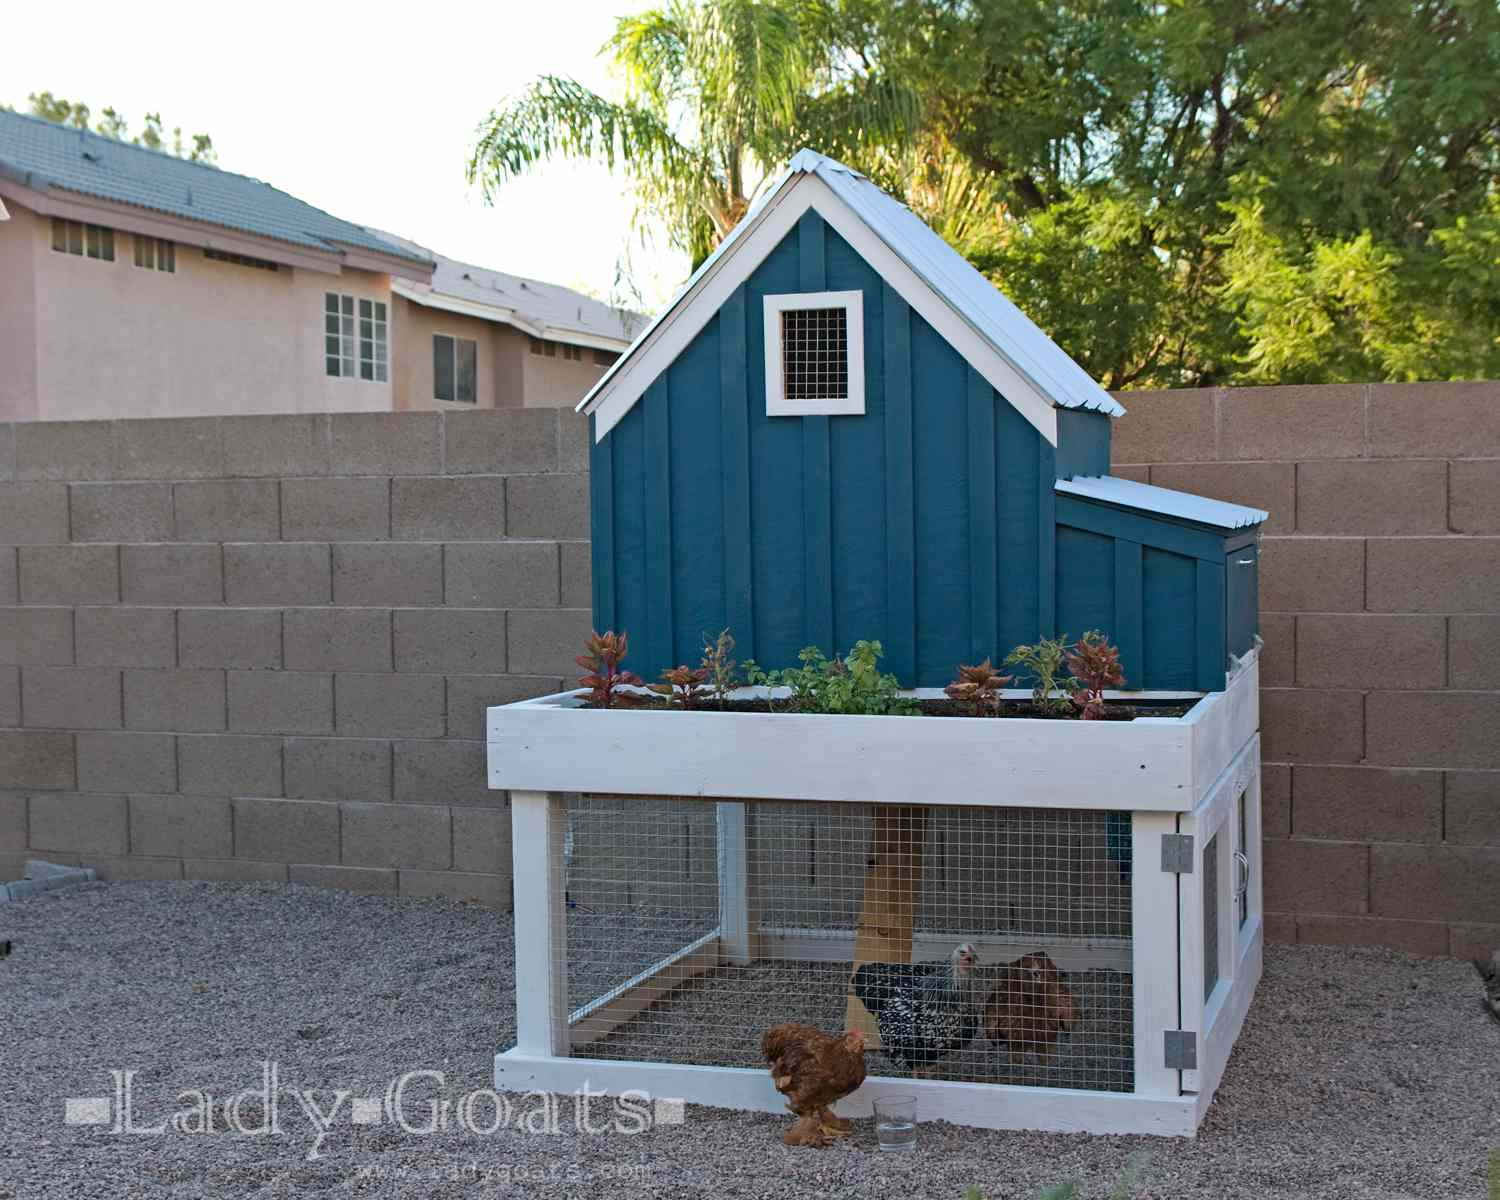 A photo of a blue and white chicken coop with room to roam - 13 Free Chicken Coop Plans You Can DIY This Weekend